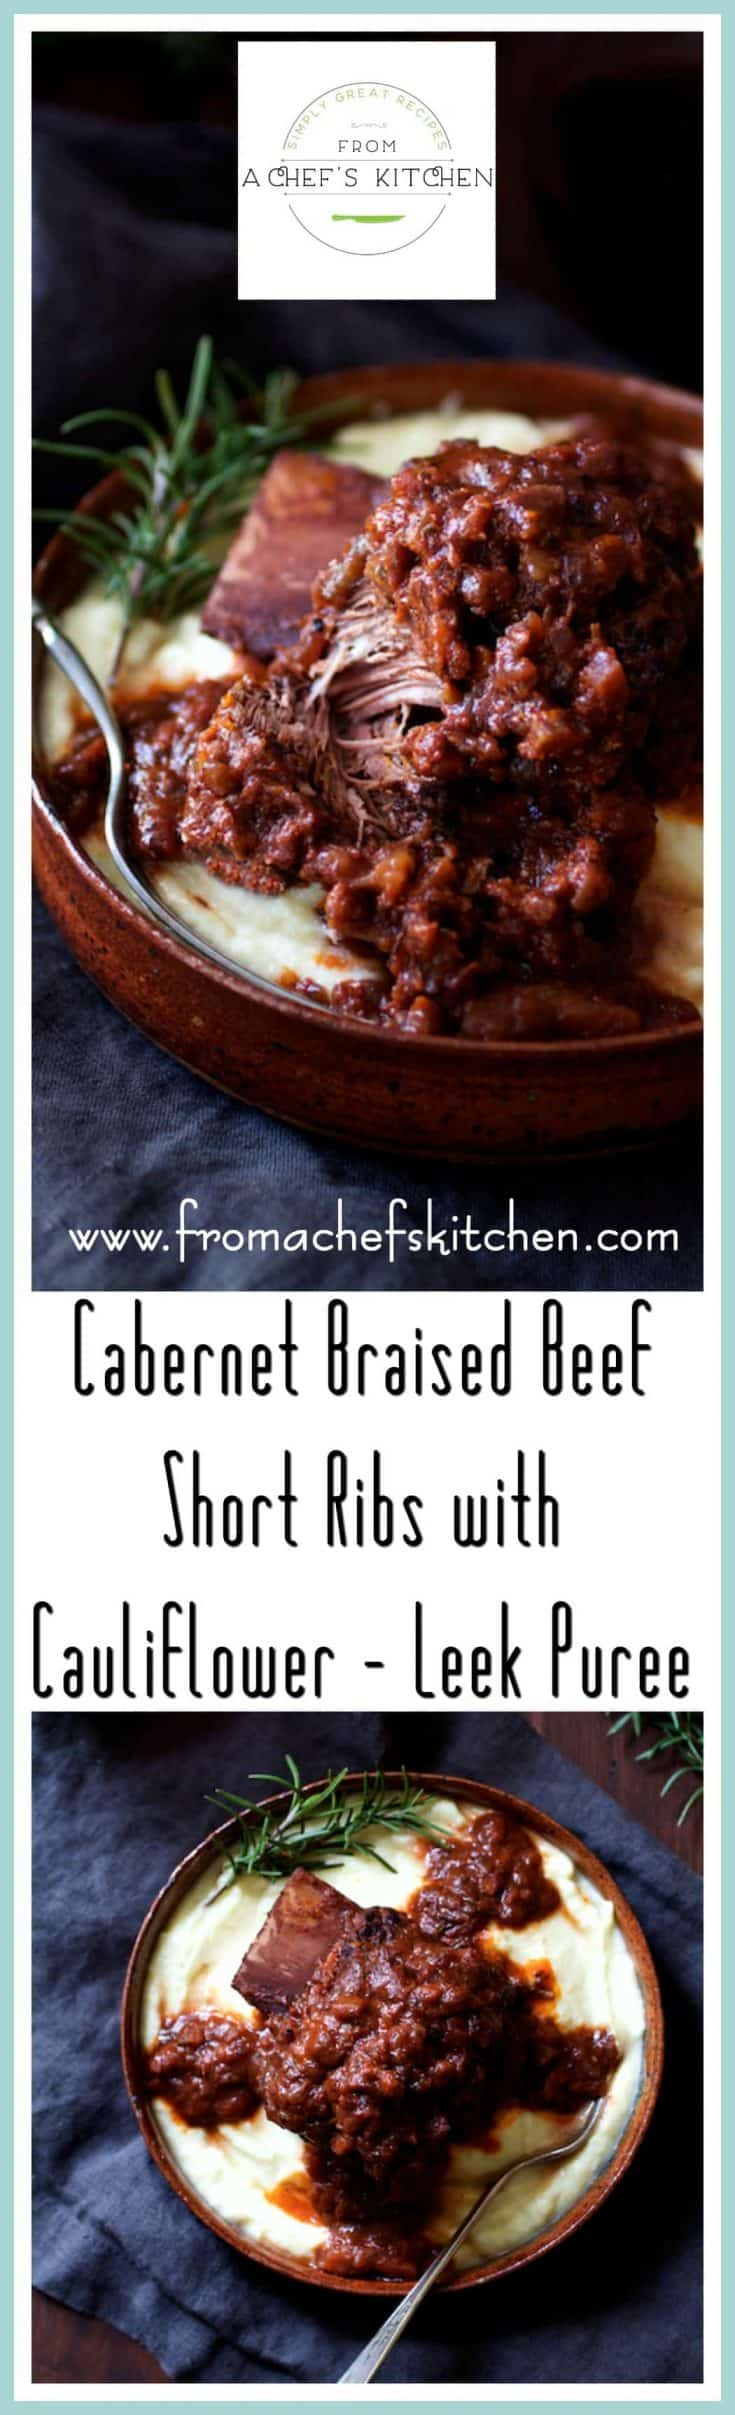 Cabernet Braised Beef Short Ribs are succulent and meltingly tender with intense flavor.  Paired with Cauliflower Leek Puree, this is a lovely comforting midwinter meal.  #shortribs #beefshortribs #beef #meat #wine